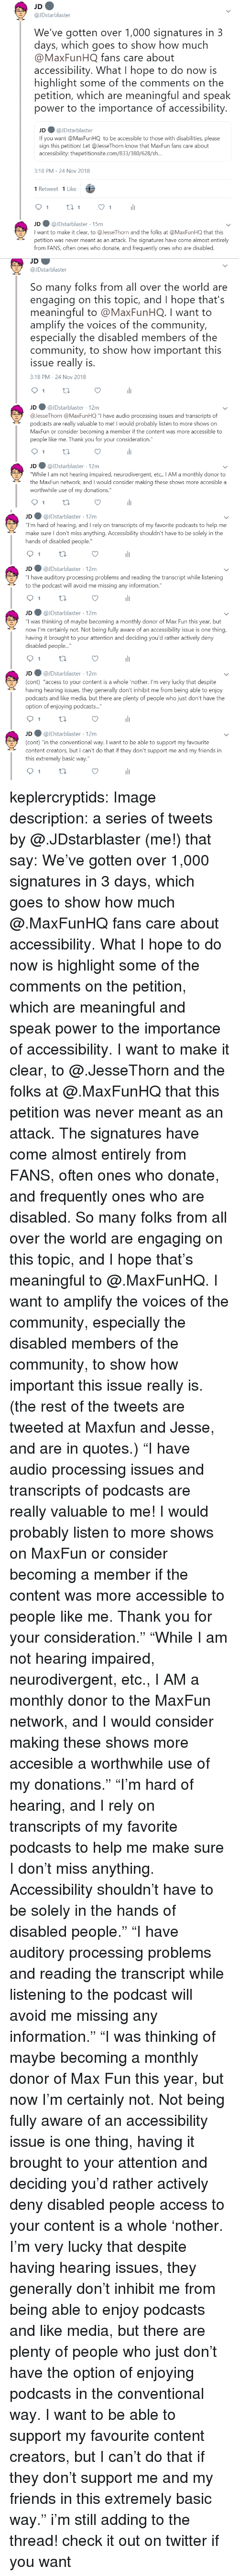 """Podcasts: JDstarblaster  We've gotten over 1,000 signatures in 3  days, which goes to show how much  @MaxFunHQ fans care about  accessibility. What I hope to do now is  highlight some of the comments on the  petition, which are meaningful and speak  power to the importance of accessibility  JD ● @lDstarblaster  If you want @MaxFunHQ to be accessible to those with disabilities, please  sign this petition! Let @JesseThorn know that MaxFun fans care about  accessibility: thepetitionsite.com/833/380/628/s...  3:18 PM-24 Nov 2018  1 Retweet 1 Like  JD @JDstarblaster 15m  I want to make it clear, to @JesseThorn and the folks at @MaxFunHQ that this  petition was never meant as an attack. The signatures have come almost entirely  from FANS, often ones who donate, and frequently ones who are disabled.   JD  @JDstarblaster  So many folks from all over the world are  engaging on this topic, and I hope that's  meaningful to @MaxFunHQ. I want to  amplify the voices of the community,  especially the disabled members of the  community, to show how important this  issue really is  3:18 PM-24 Nov 2018  JD ● @JDstarblaster· 12m  @lesseThorn @MaxFun HQ """"I have audio processing issues and transcripts of  о,  dcasts are really valuable to me! I would probably listen to more shows on  MaxFun or consider becoming a member if the content was more accessible to  people like me. Thank you for your consideration.""""  JD@JDstarblaster 12m  While I am not hearing impaired, neurodivergent, etc., IAM a monthly donor to  the MaxFun network, and I would consider making these shows more accesible a  worthwhile use of my donations.""""   JD@JDstarblaster 12m  ou""""I'm hard of hearing, and I rely on transcripts of my favorite podcasts to help me  make sure I don't miss anything. Accessibility shouldn't have to be solely in the  hands of disabled people  JD@JDstarblaster 12m  have auditory processing problems and reading the transcript while listening  to the podcast will avoid me missing any information.""""  J"""